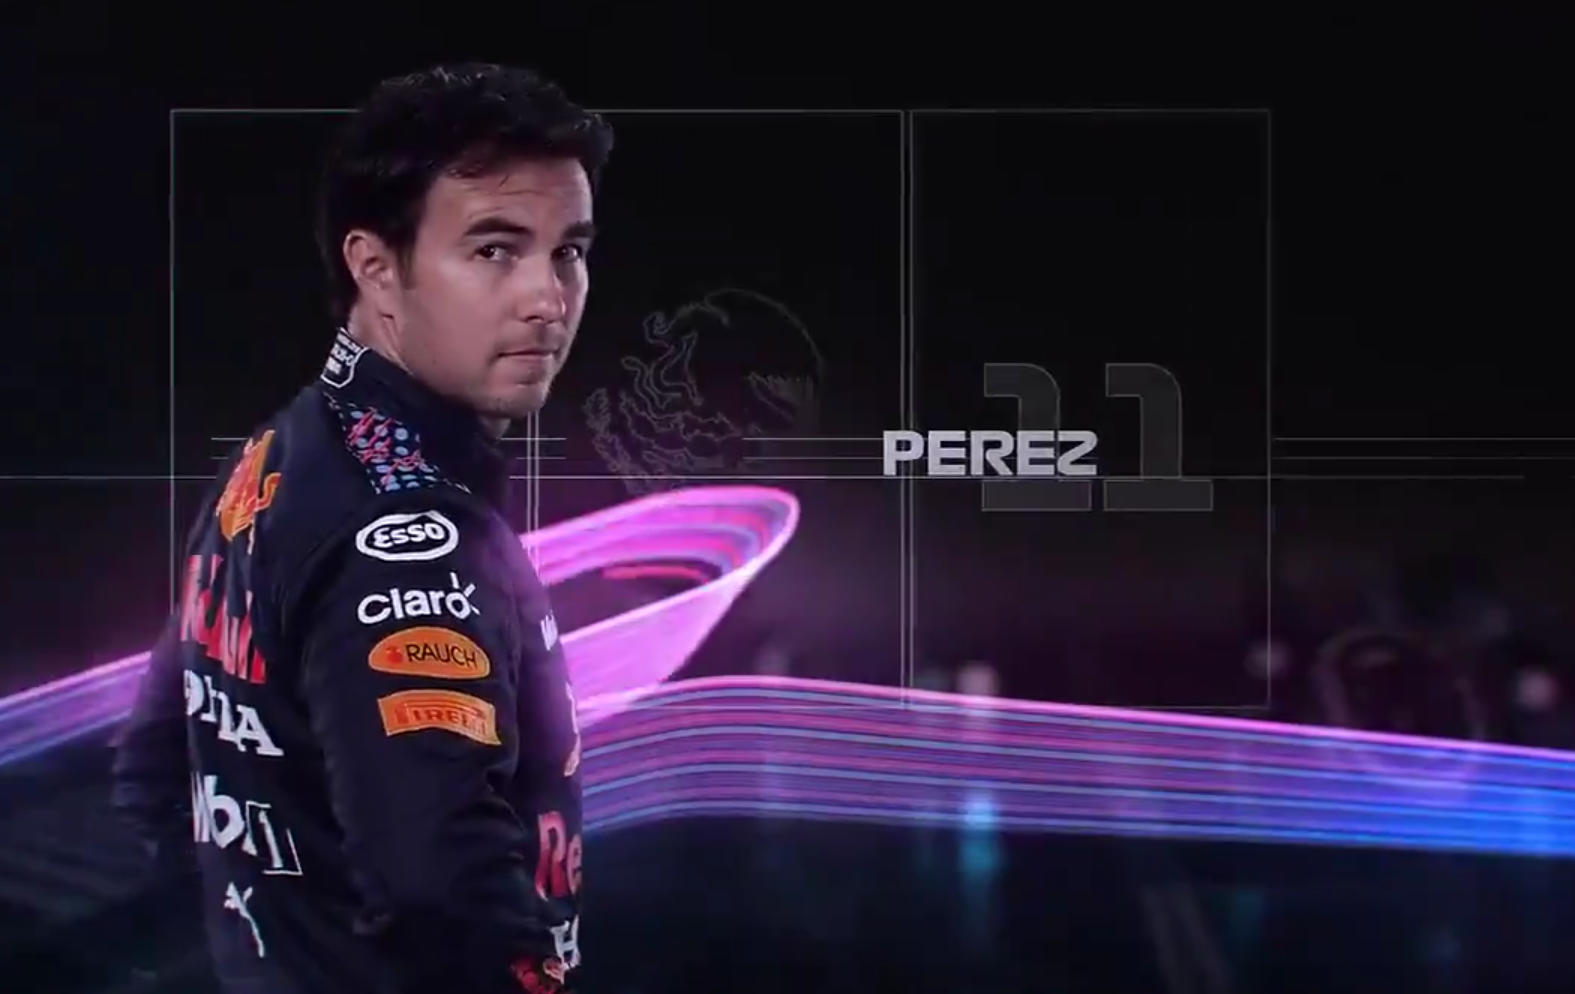 VIDEO: Watch The New Formula 1 Intro For 2021 Season